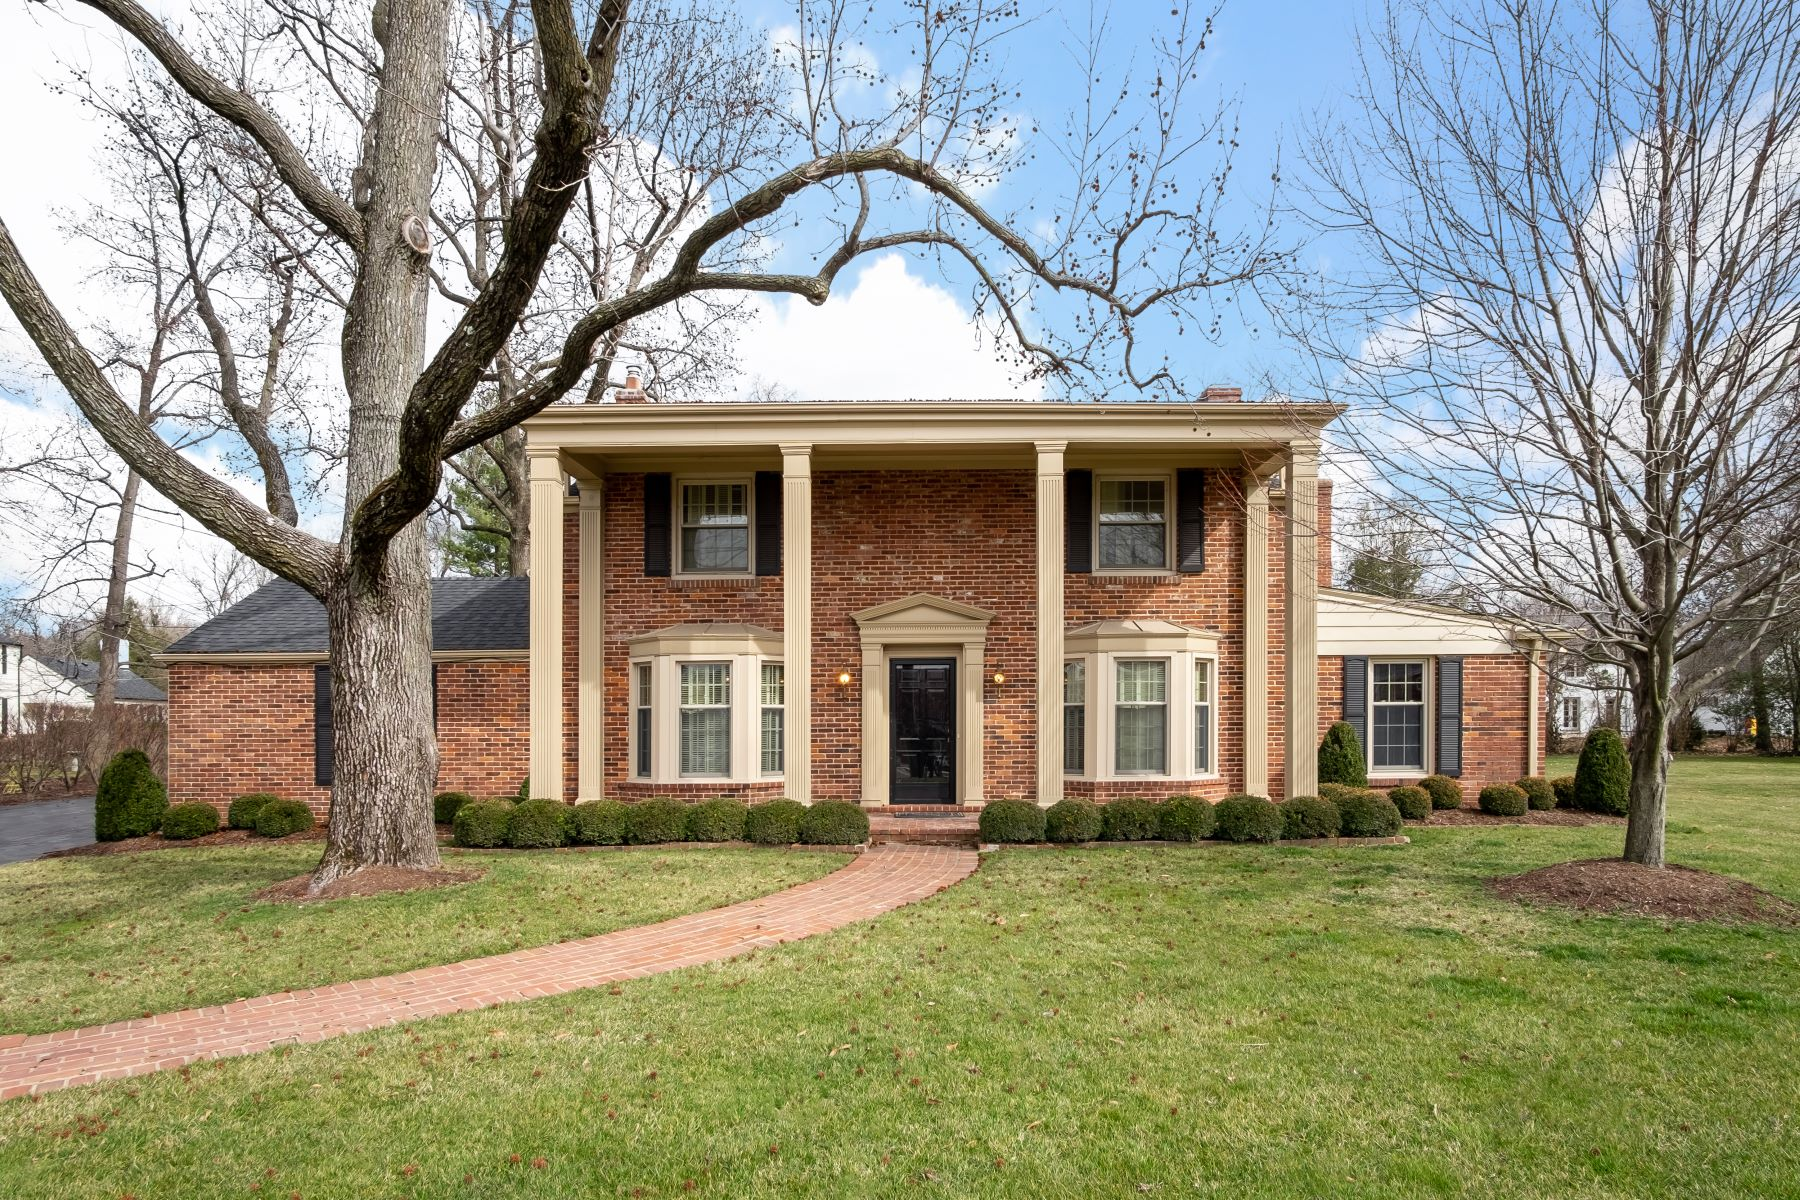 Single Family Homes for Sale at Incredible Ladue Home 1110 South Warson Road Ladue, Missouri 63124 United States